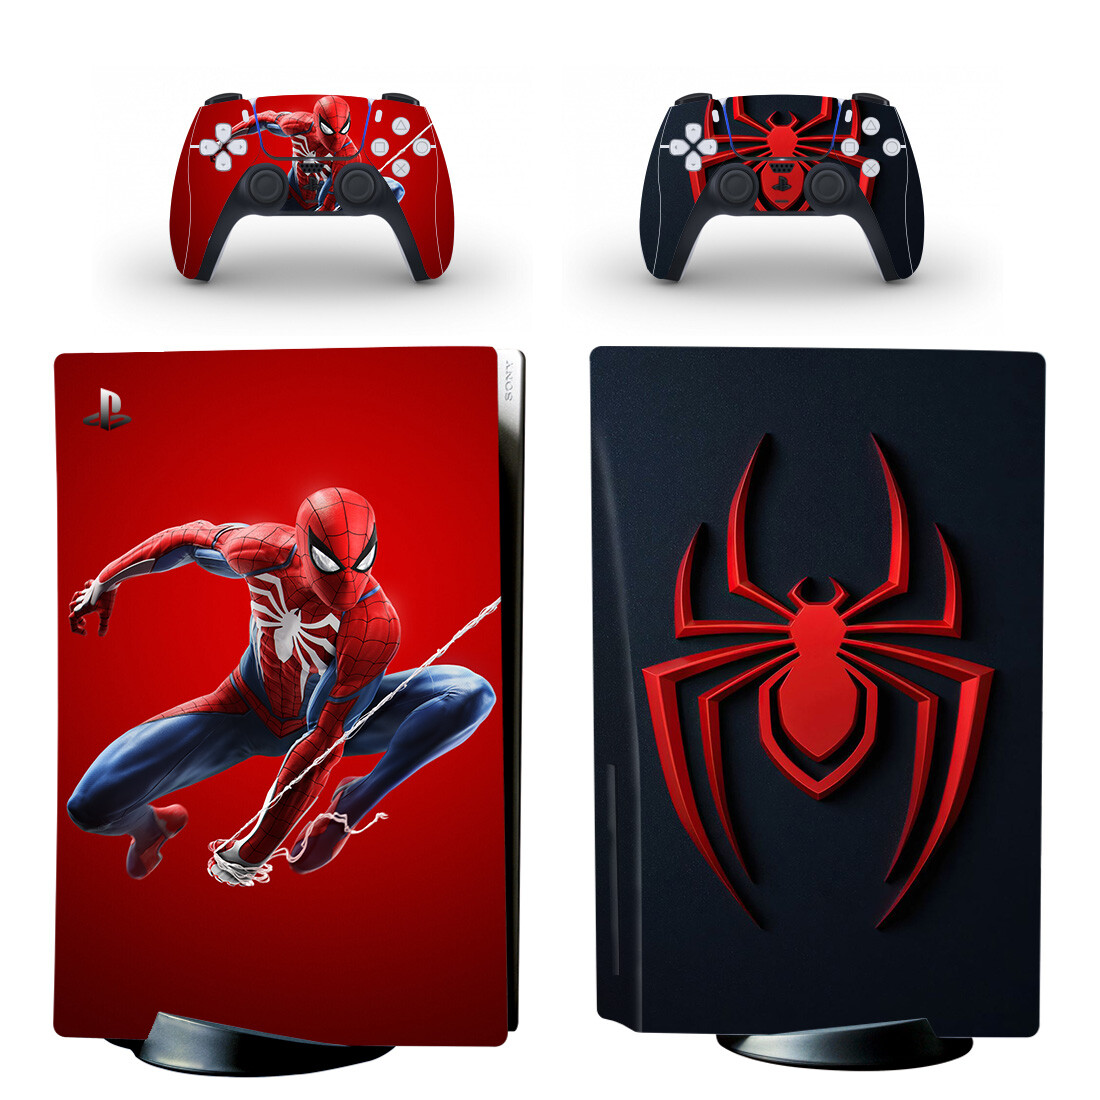 Marvel's Spider Man Skin Sticker For PlayStation 5 And Controllers